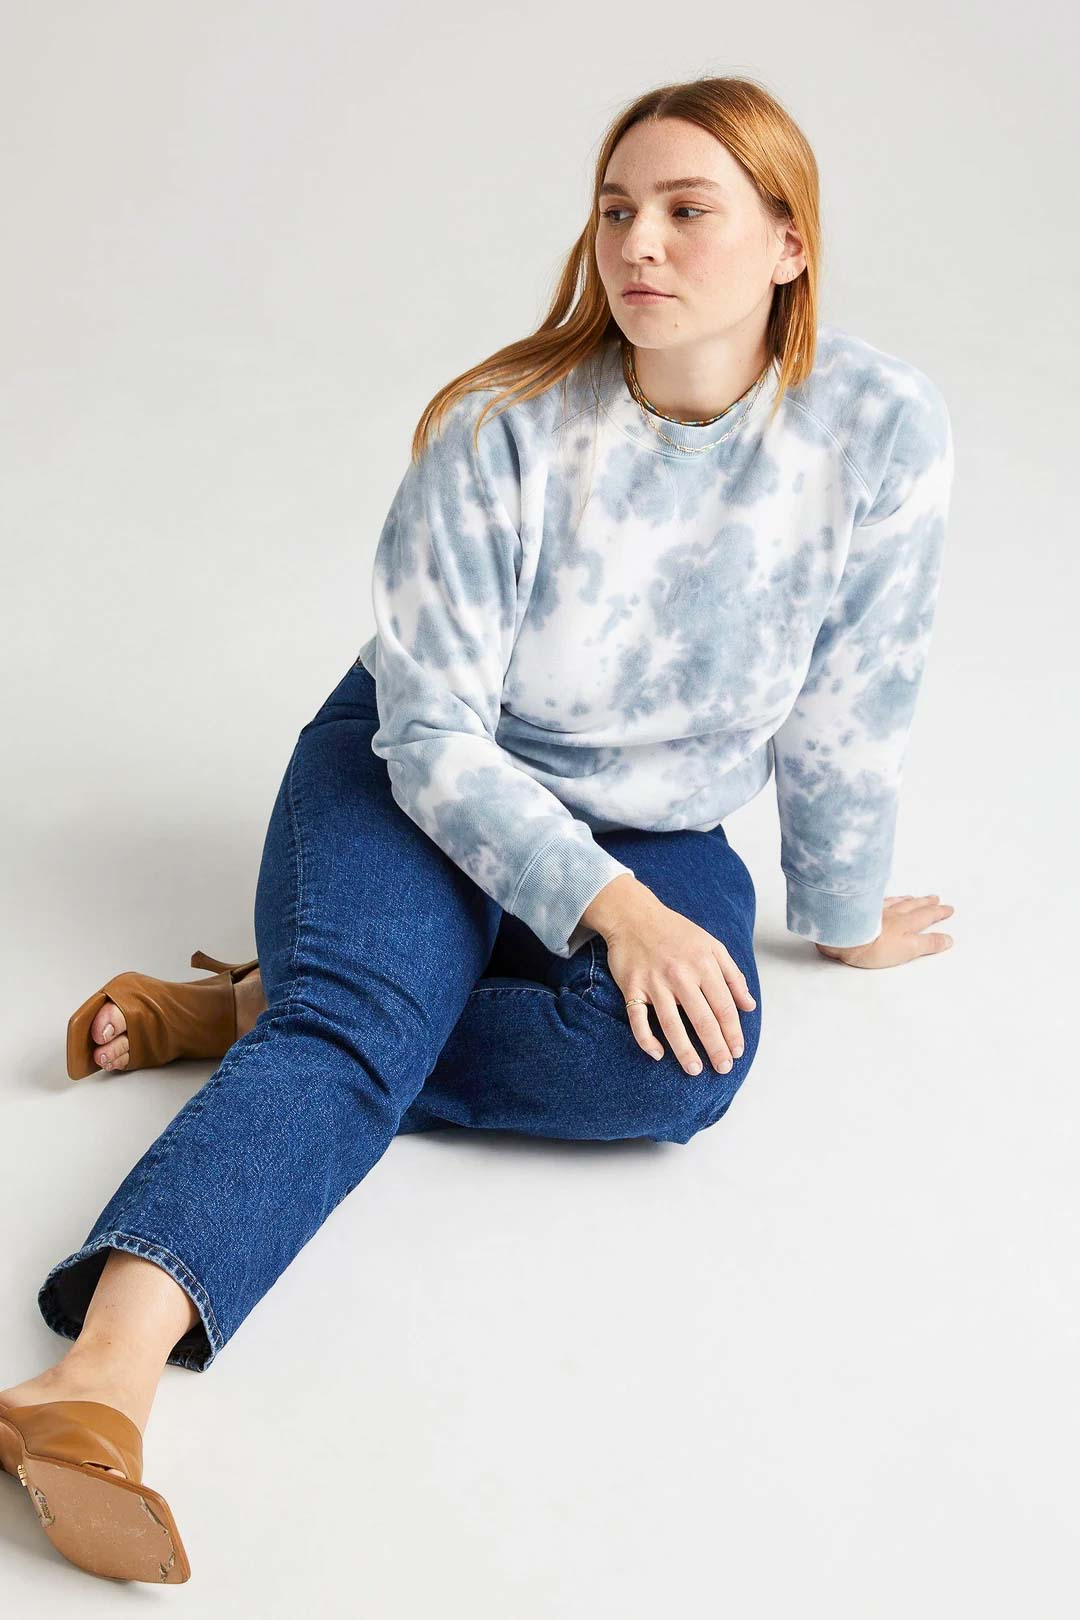 Recycled Crew Sweatshirt - Blue Mirage Tie Dye - The Canyon